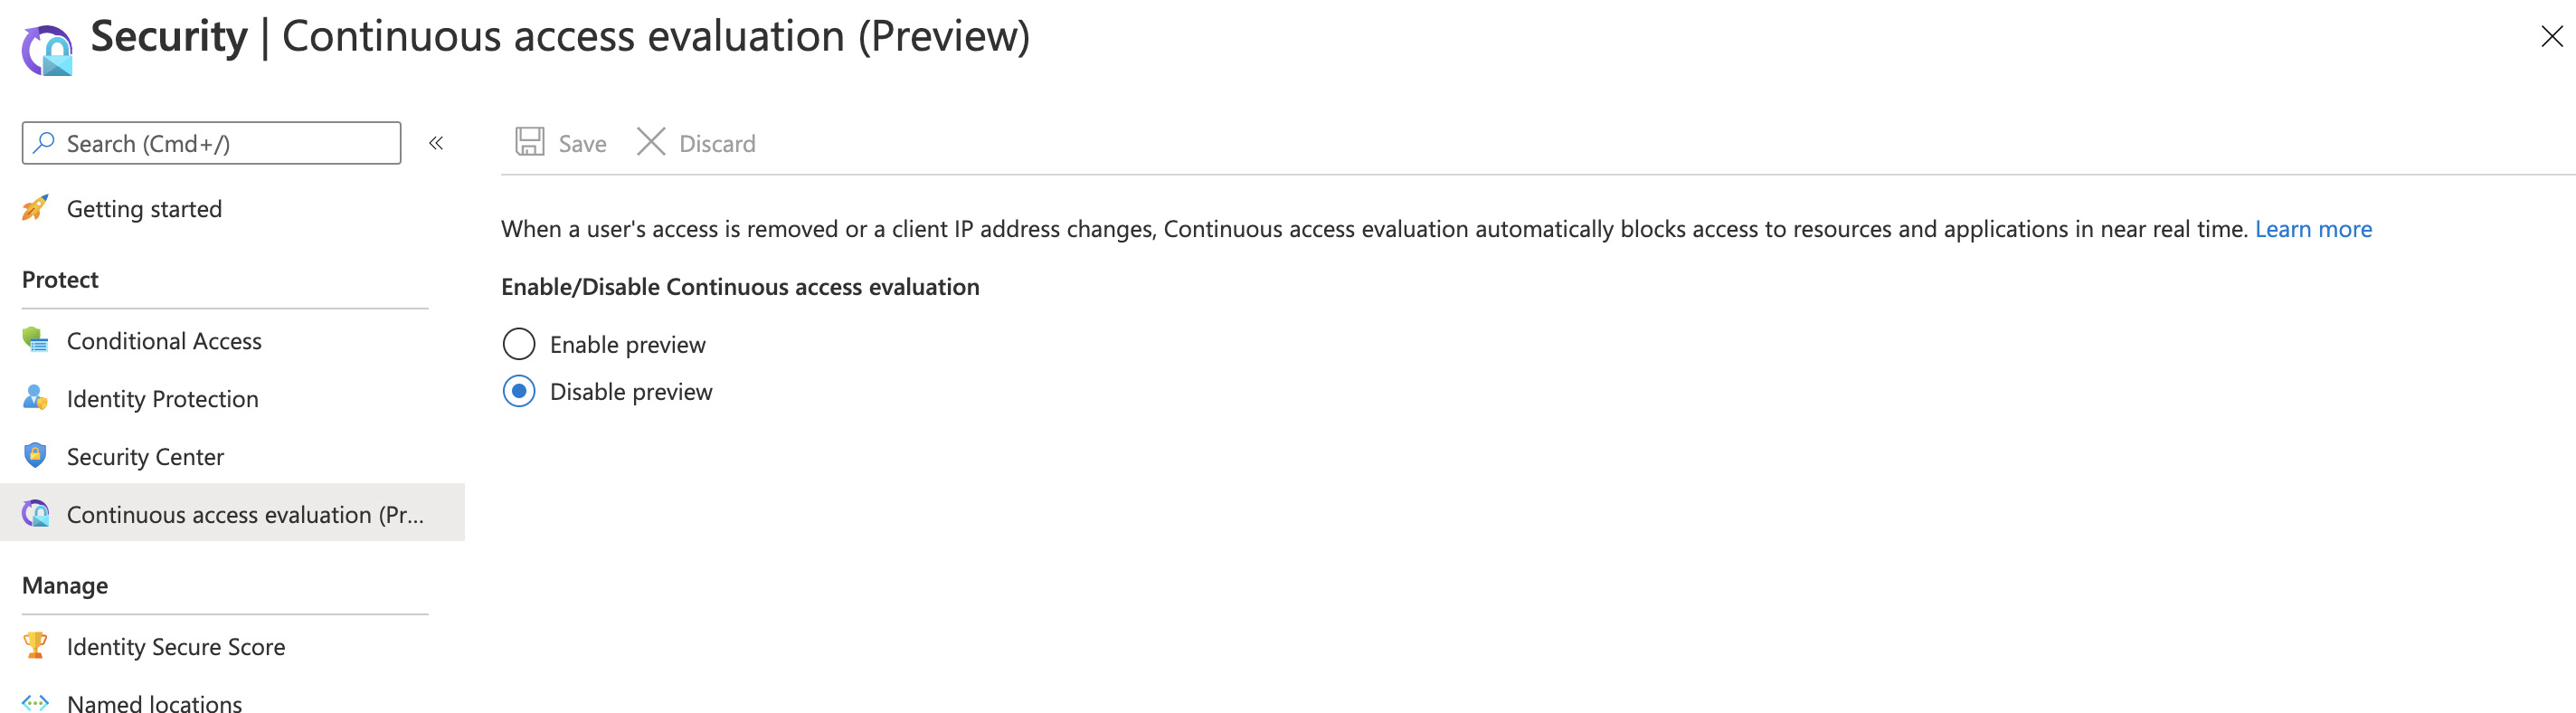 A screenshot of the Continuous Access Evaluation Preview pane